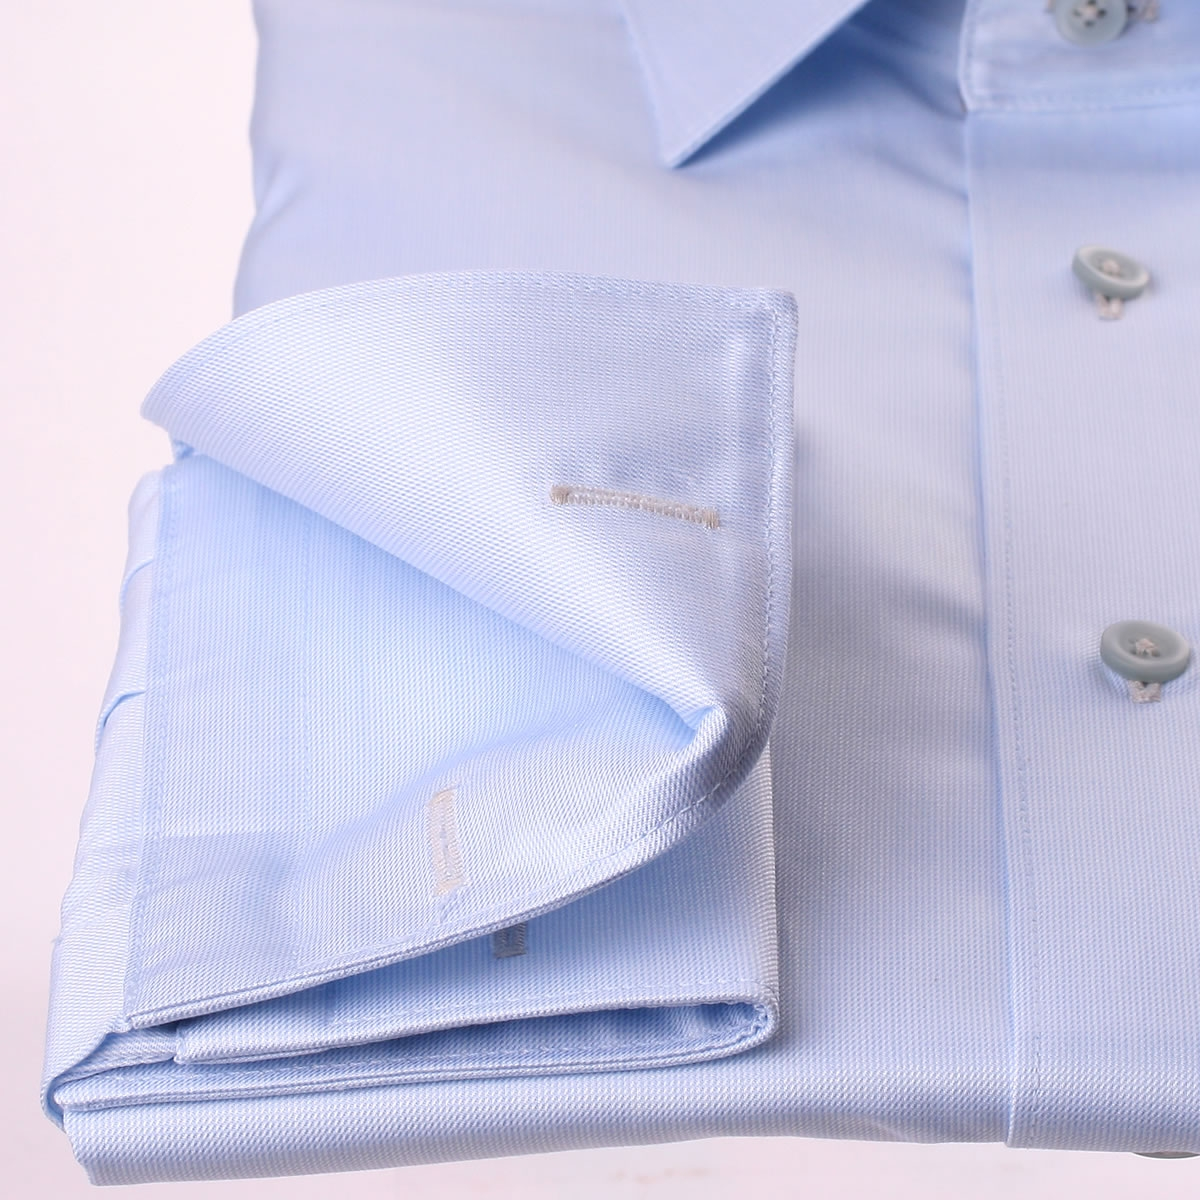 Light blue french cuff shirt with grey pattern collar and for Light blue french cuff dress shirt